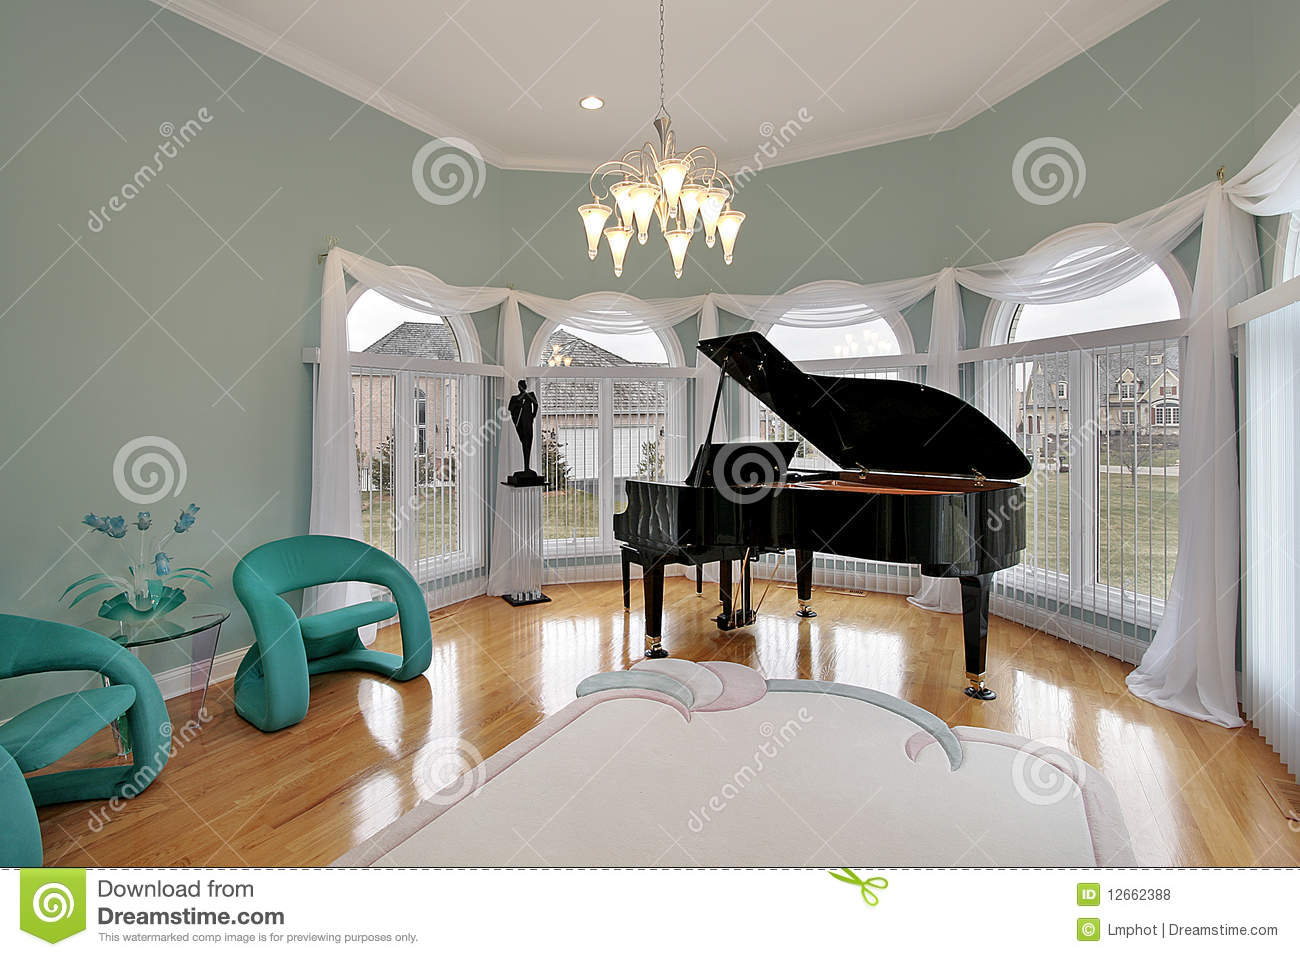 Empty room with chair violin and sheet music on floor photograph - Music Room With Green Chairs Royalty Free Stock Photos